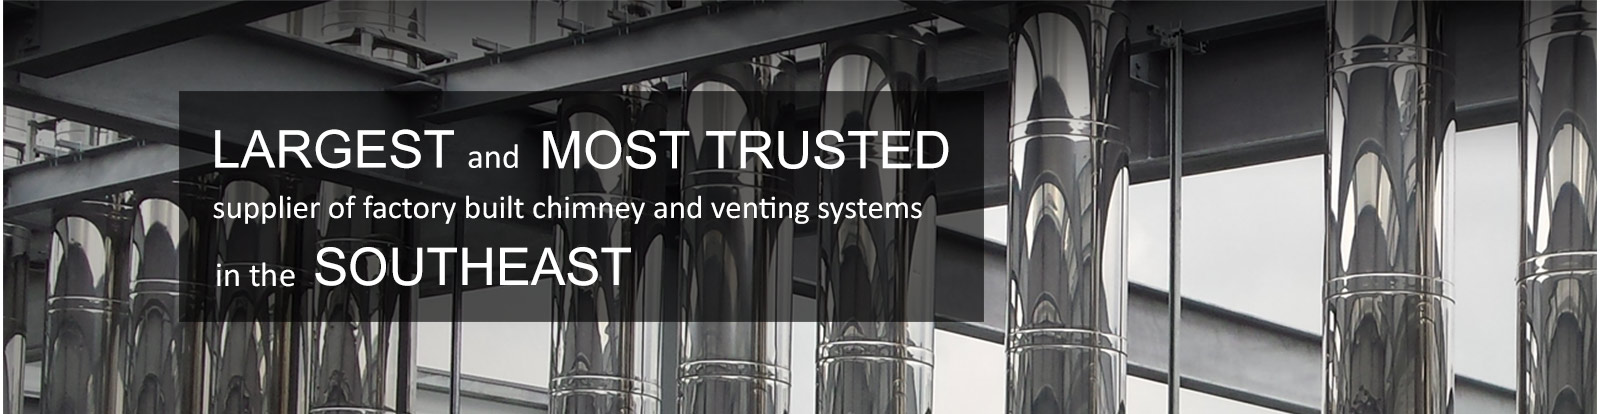 Largest and most trusted supplier of factory built chimney and venting systems in the southeast